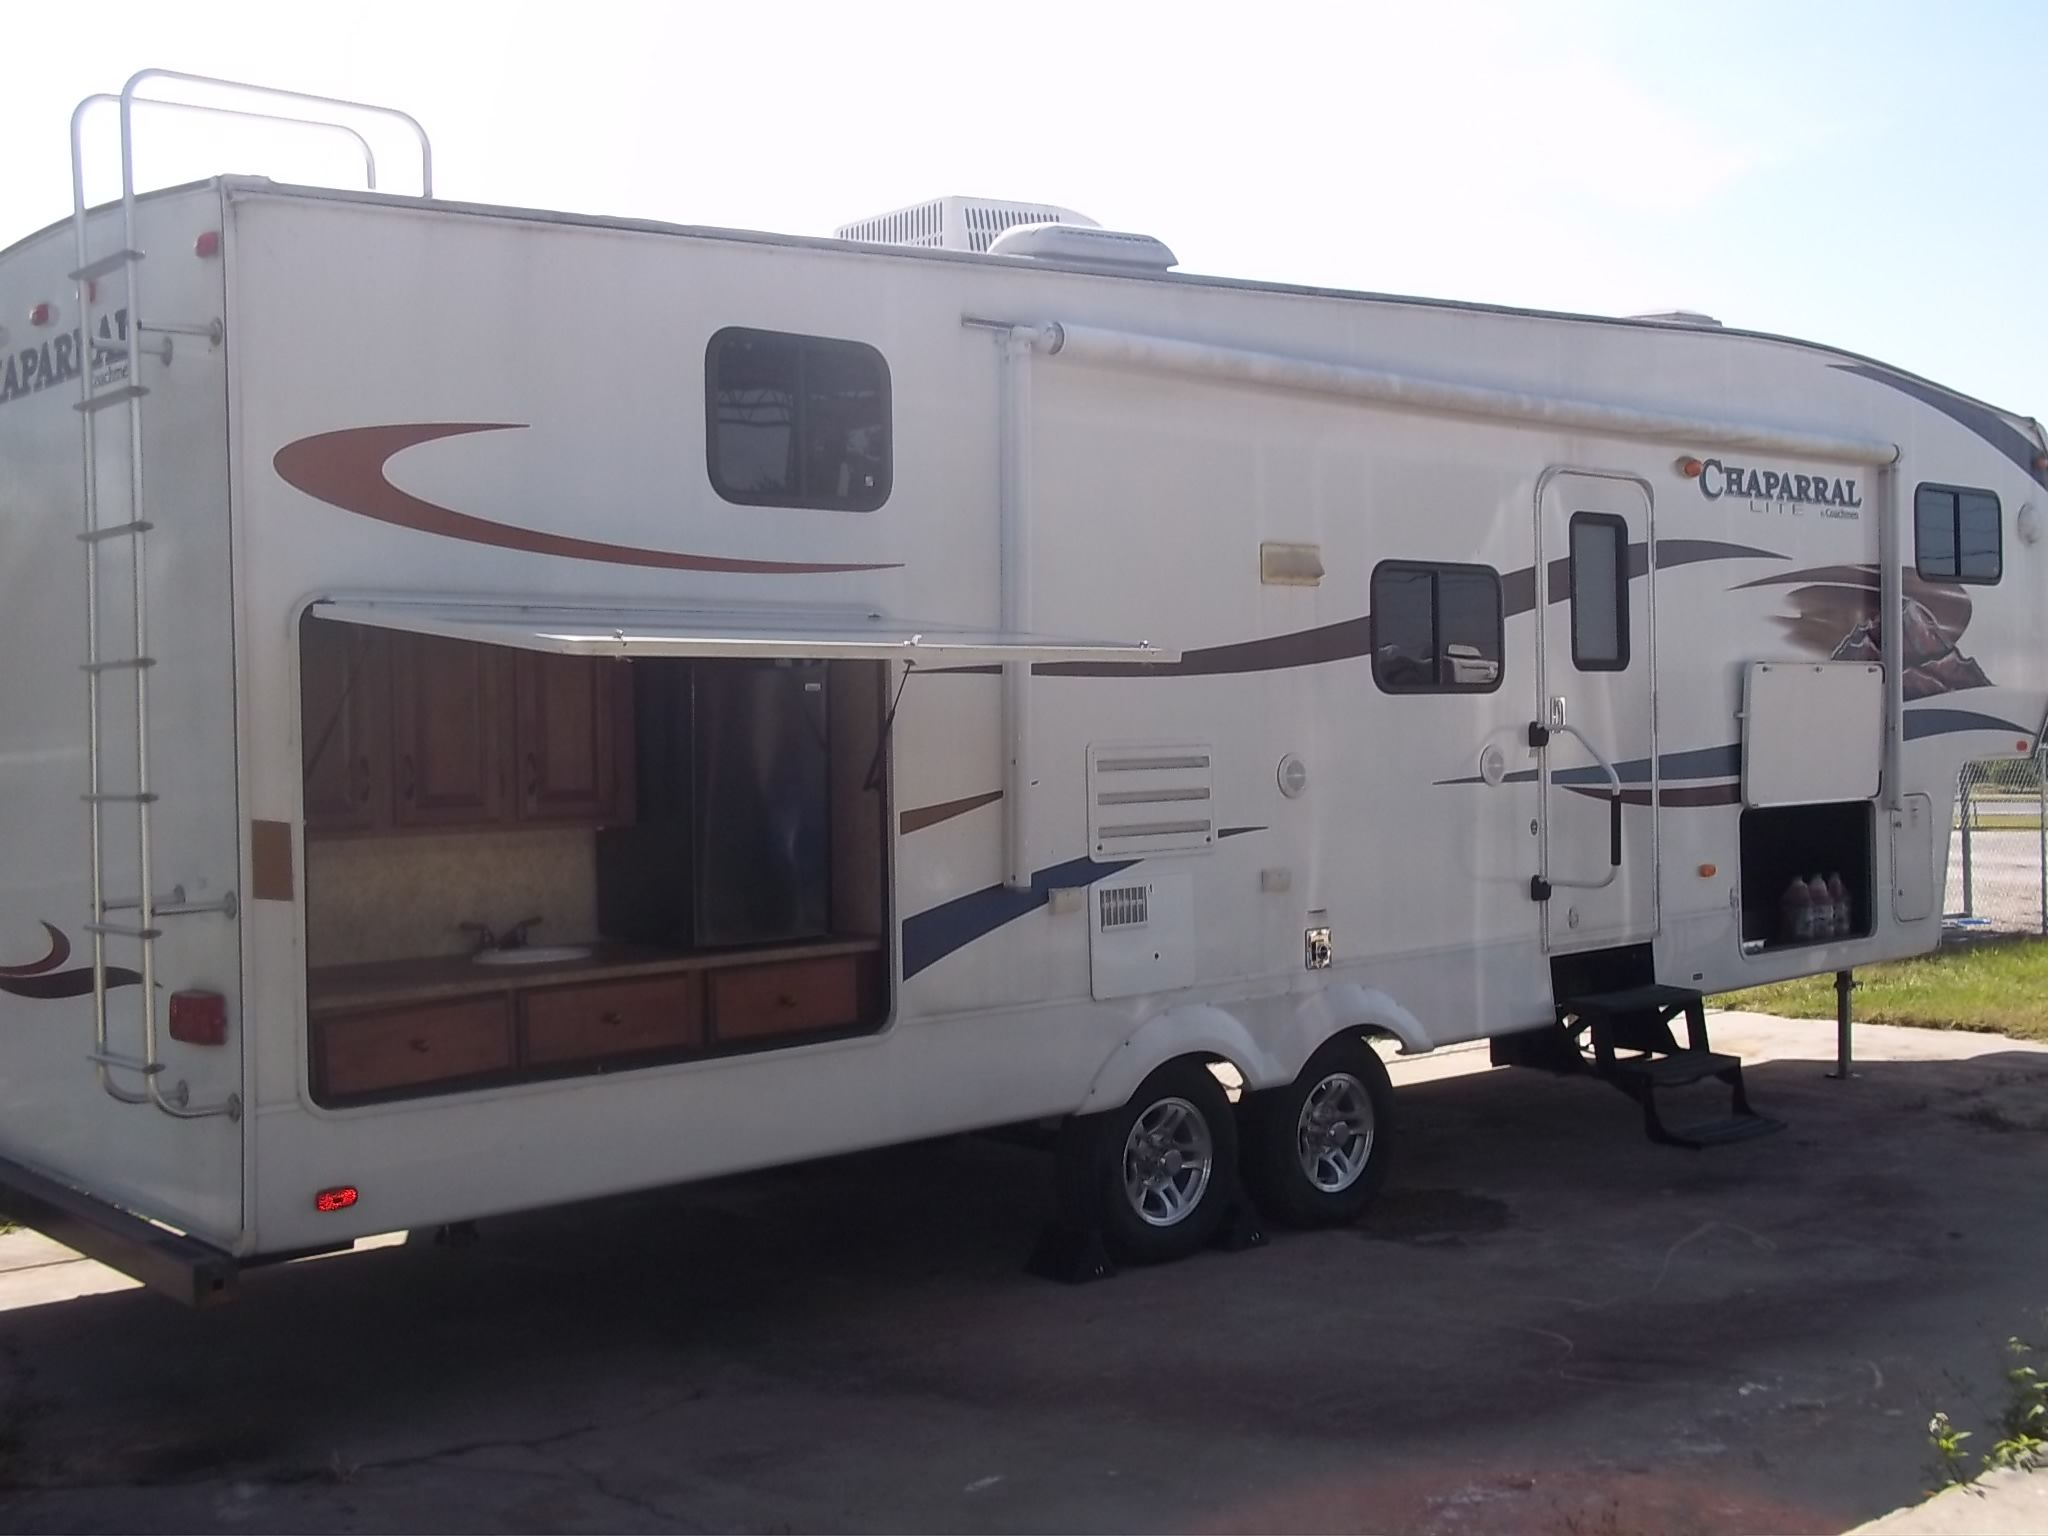 2011 coachmen chaparral 269bhs 5th wheel rv for sale by owner